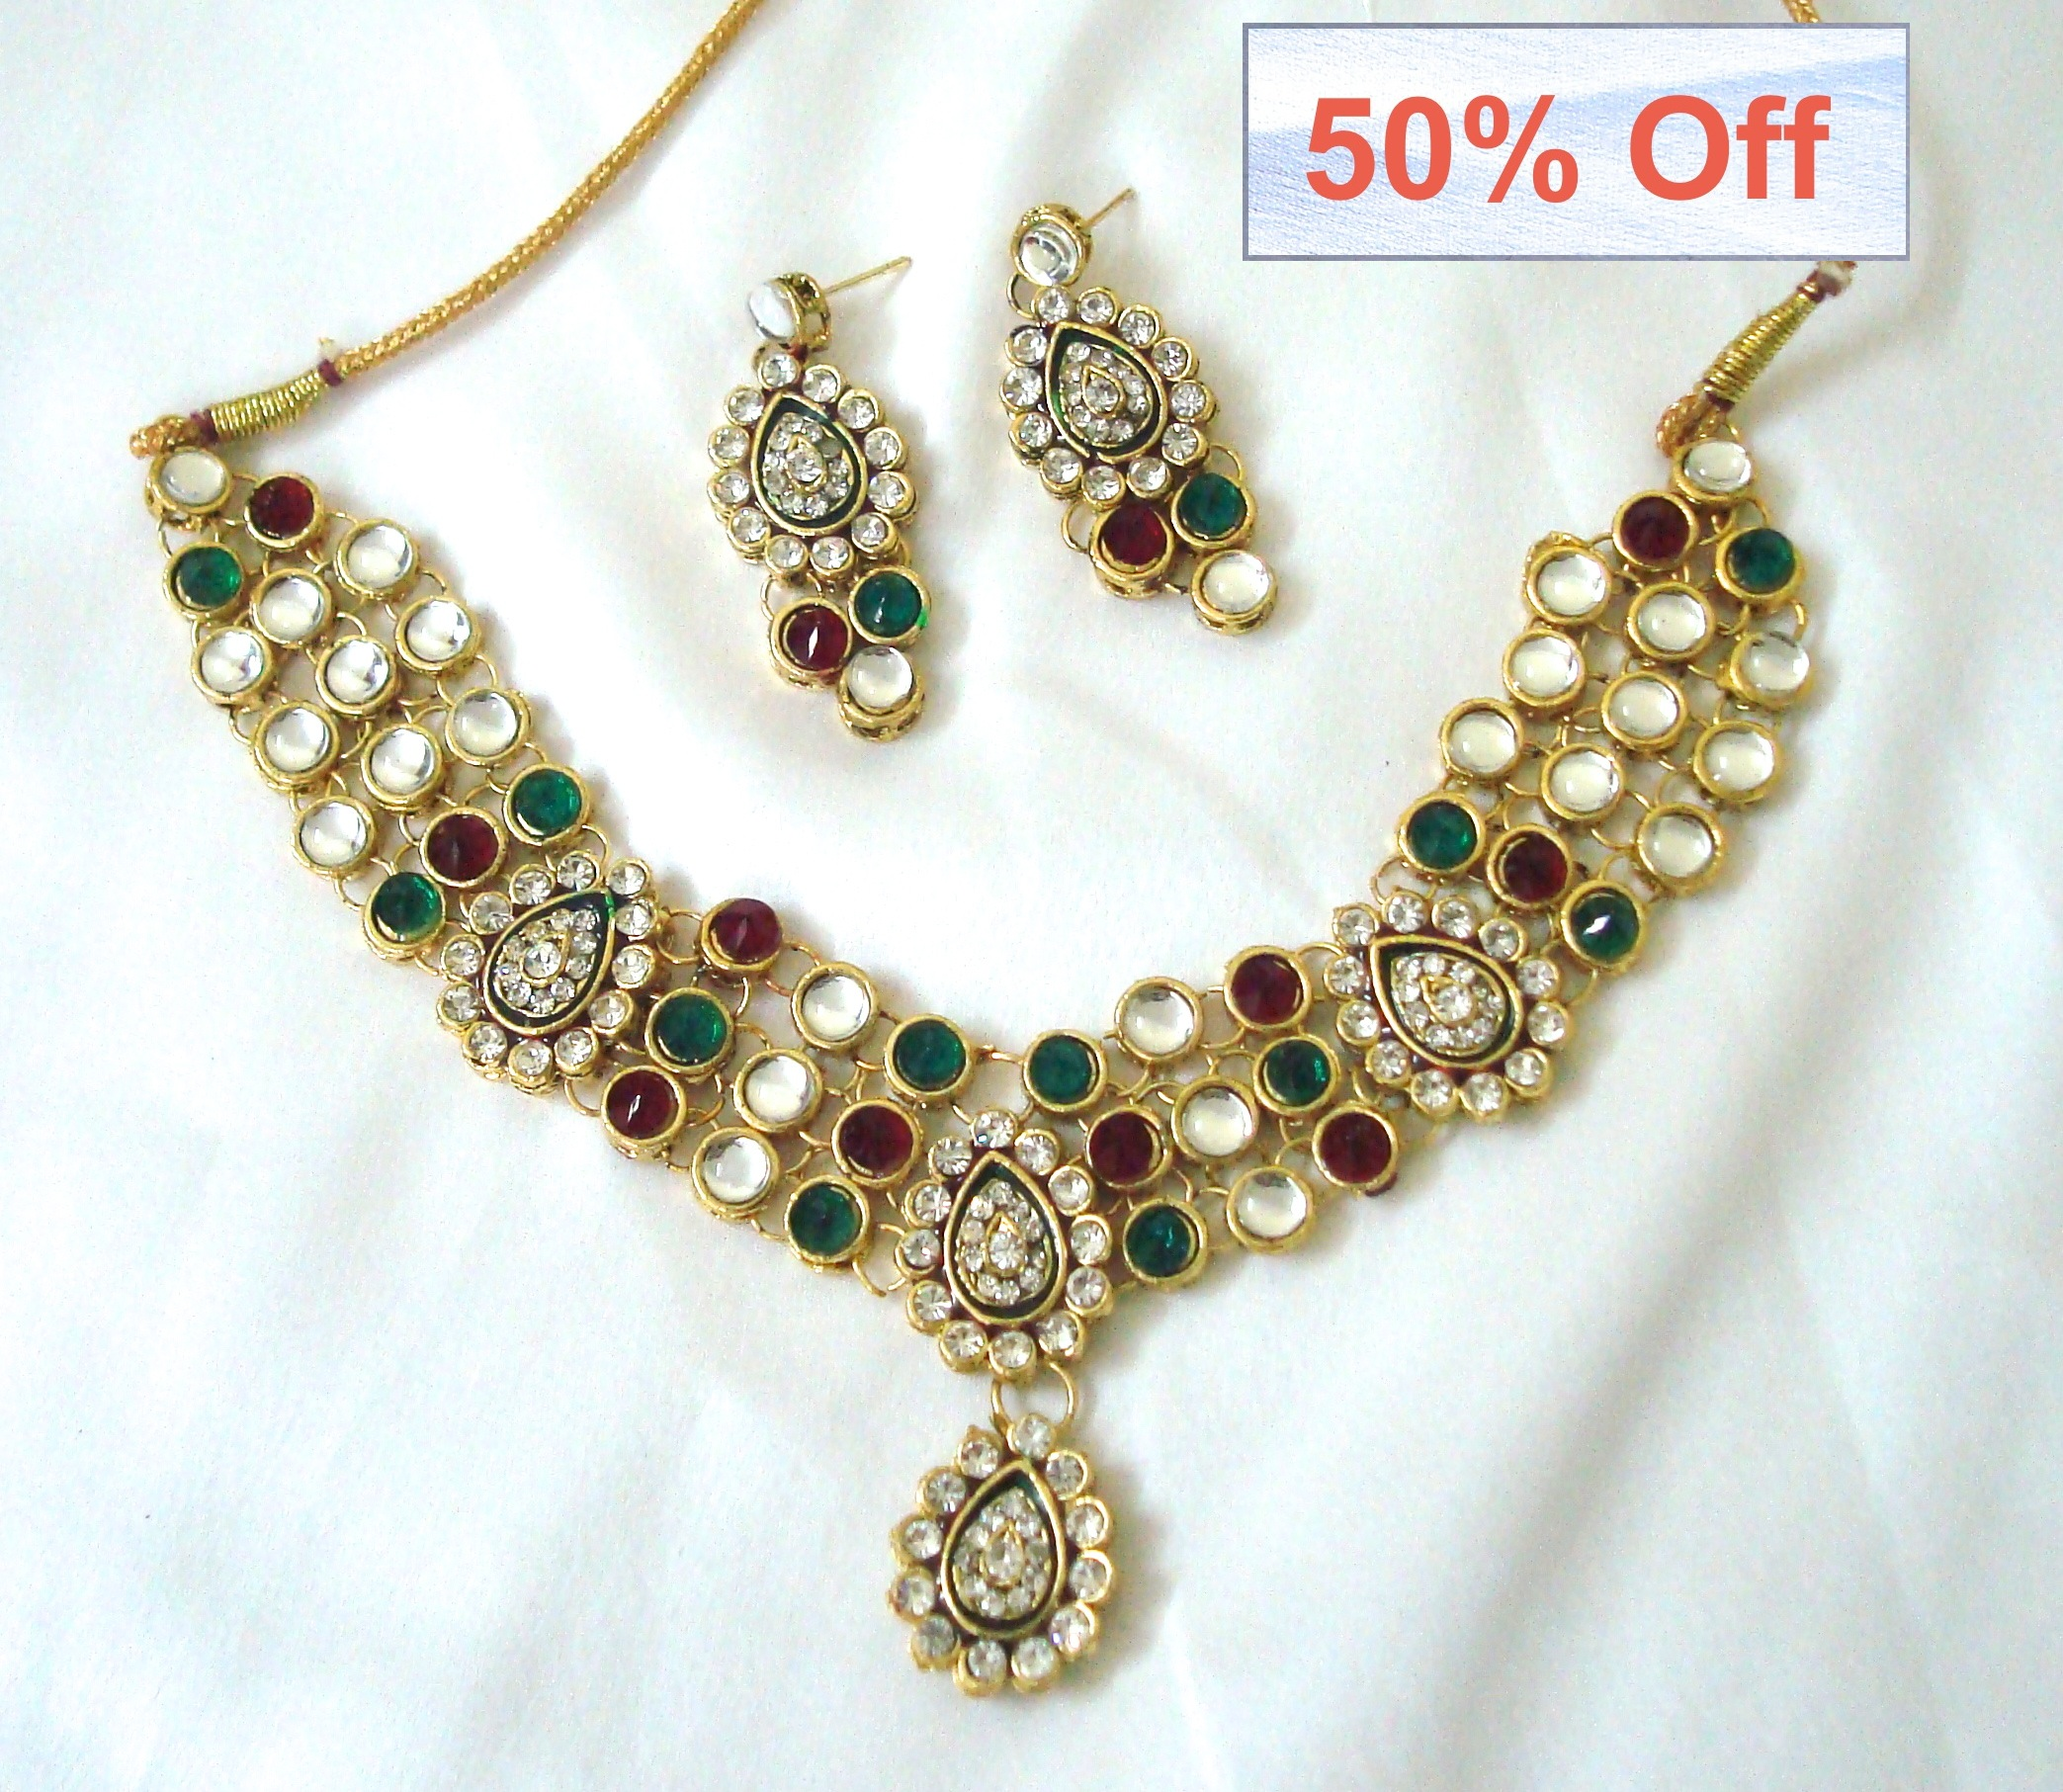 50 off on Indian Kundan Necklace with matching earrings